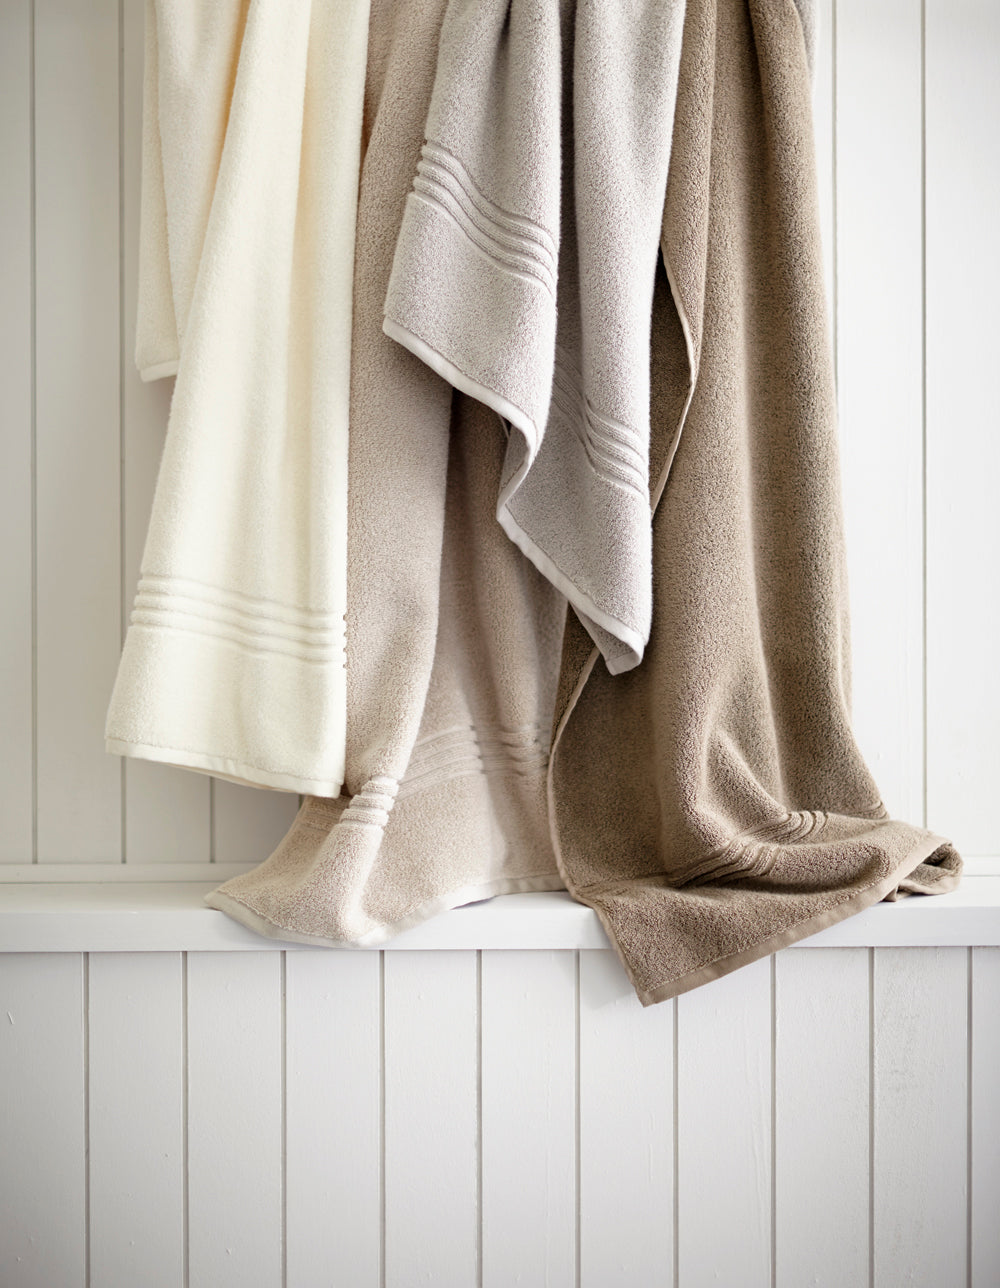 Chelsea Bath Towels from Peacock Alley in various neutral shades